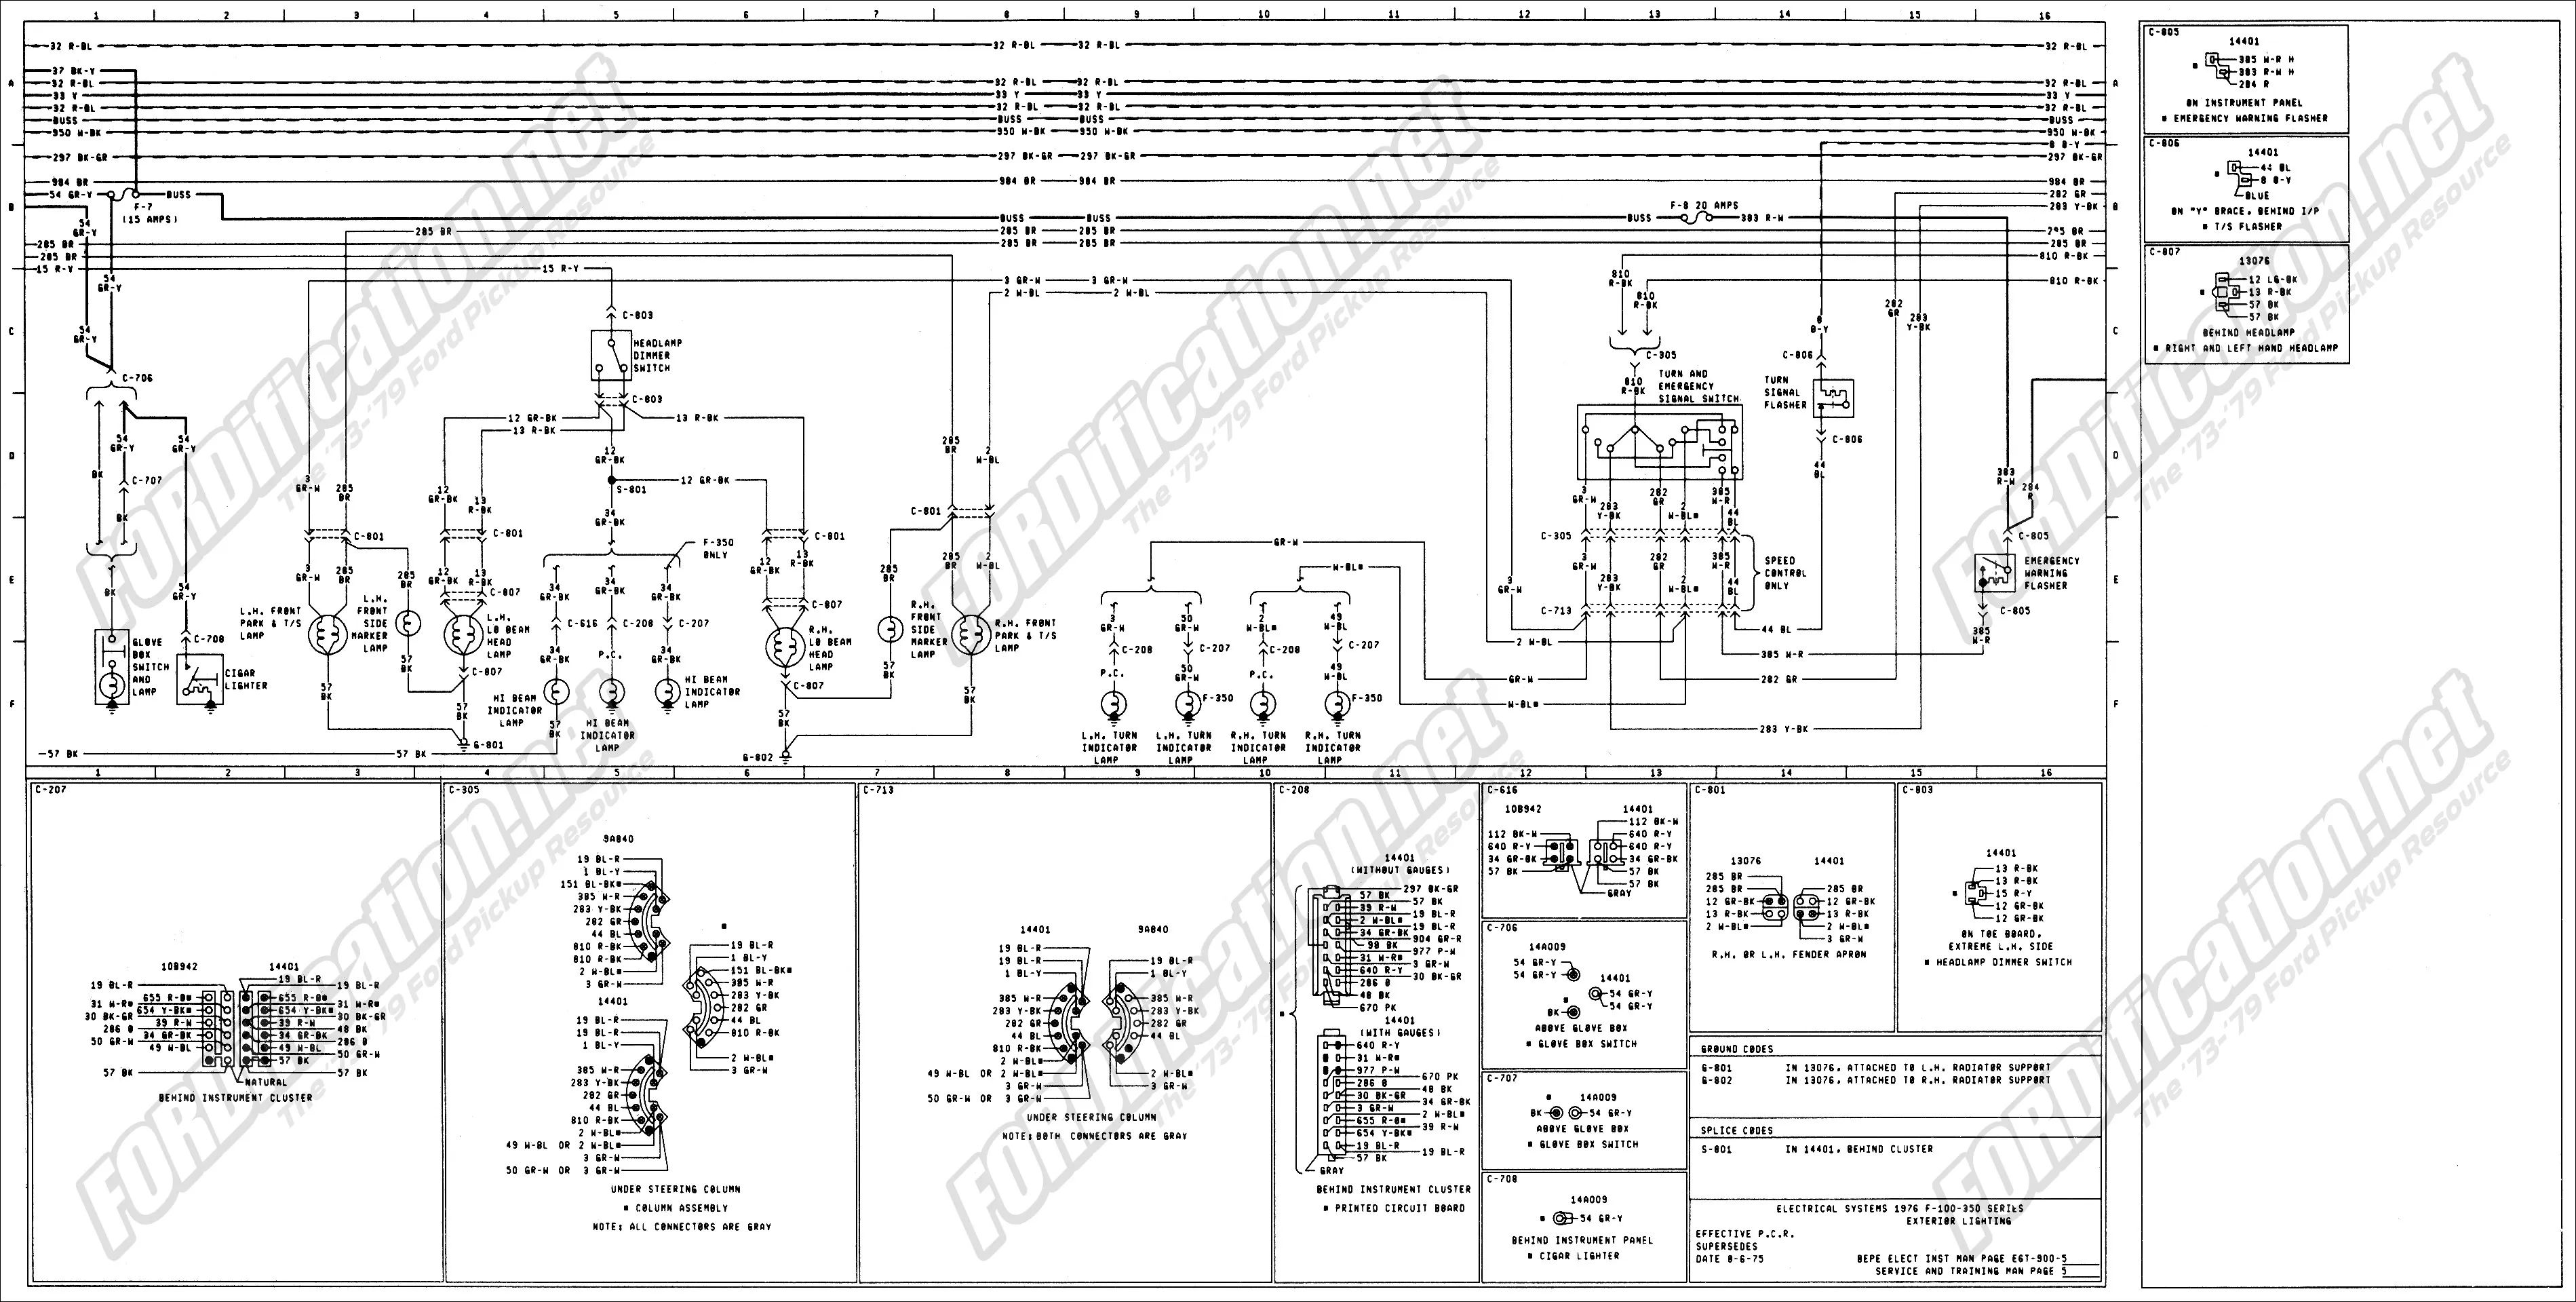 07 crown victoria wiring diagram